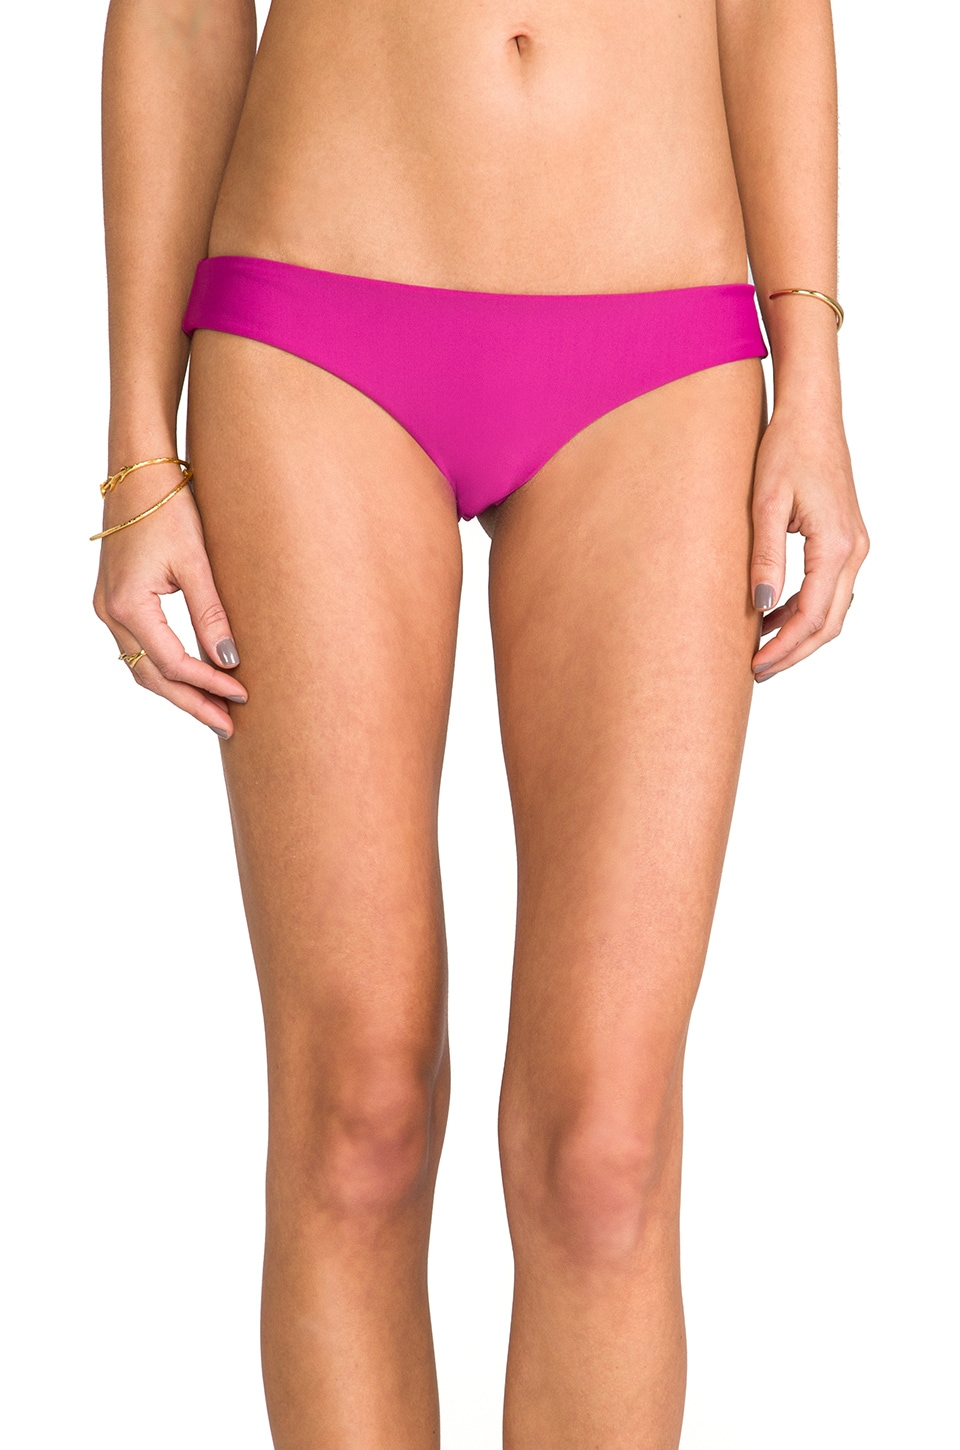 Tori Praver Swimwear Kalani Bottom in Orchid